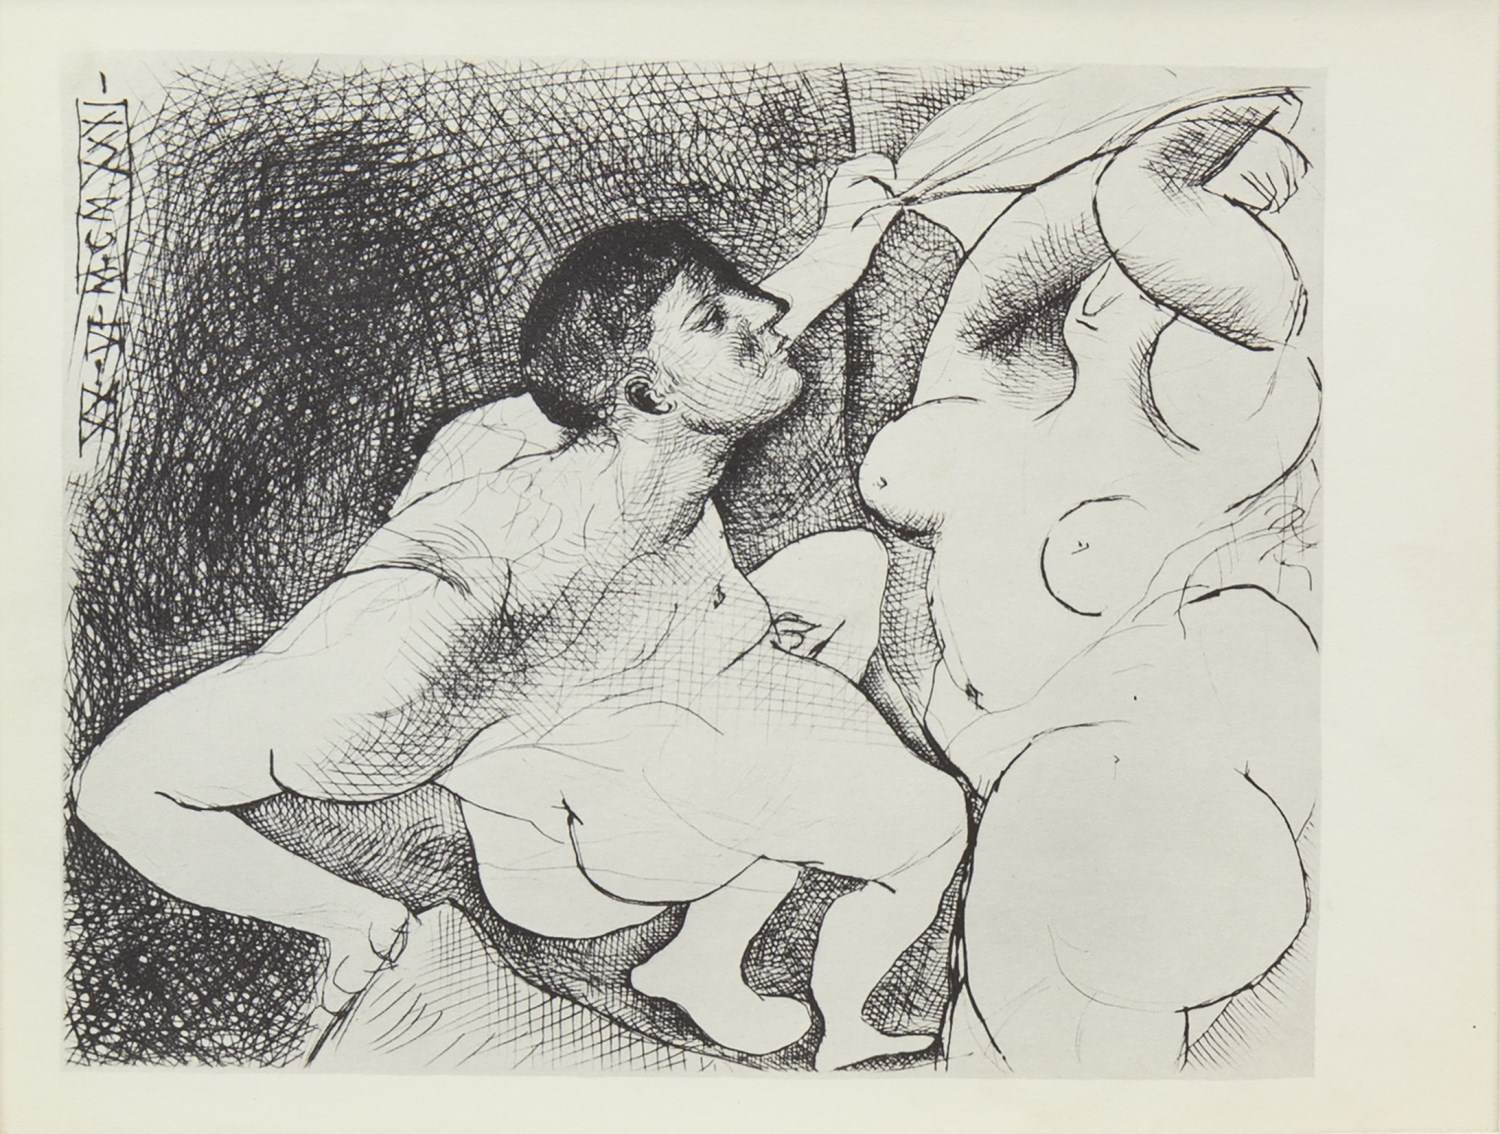 Lot 78 - SET OF SIX PRINTS FROM THE VOLLARD SUITE (1956), BY PABLO PICASSO